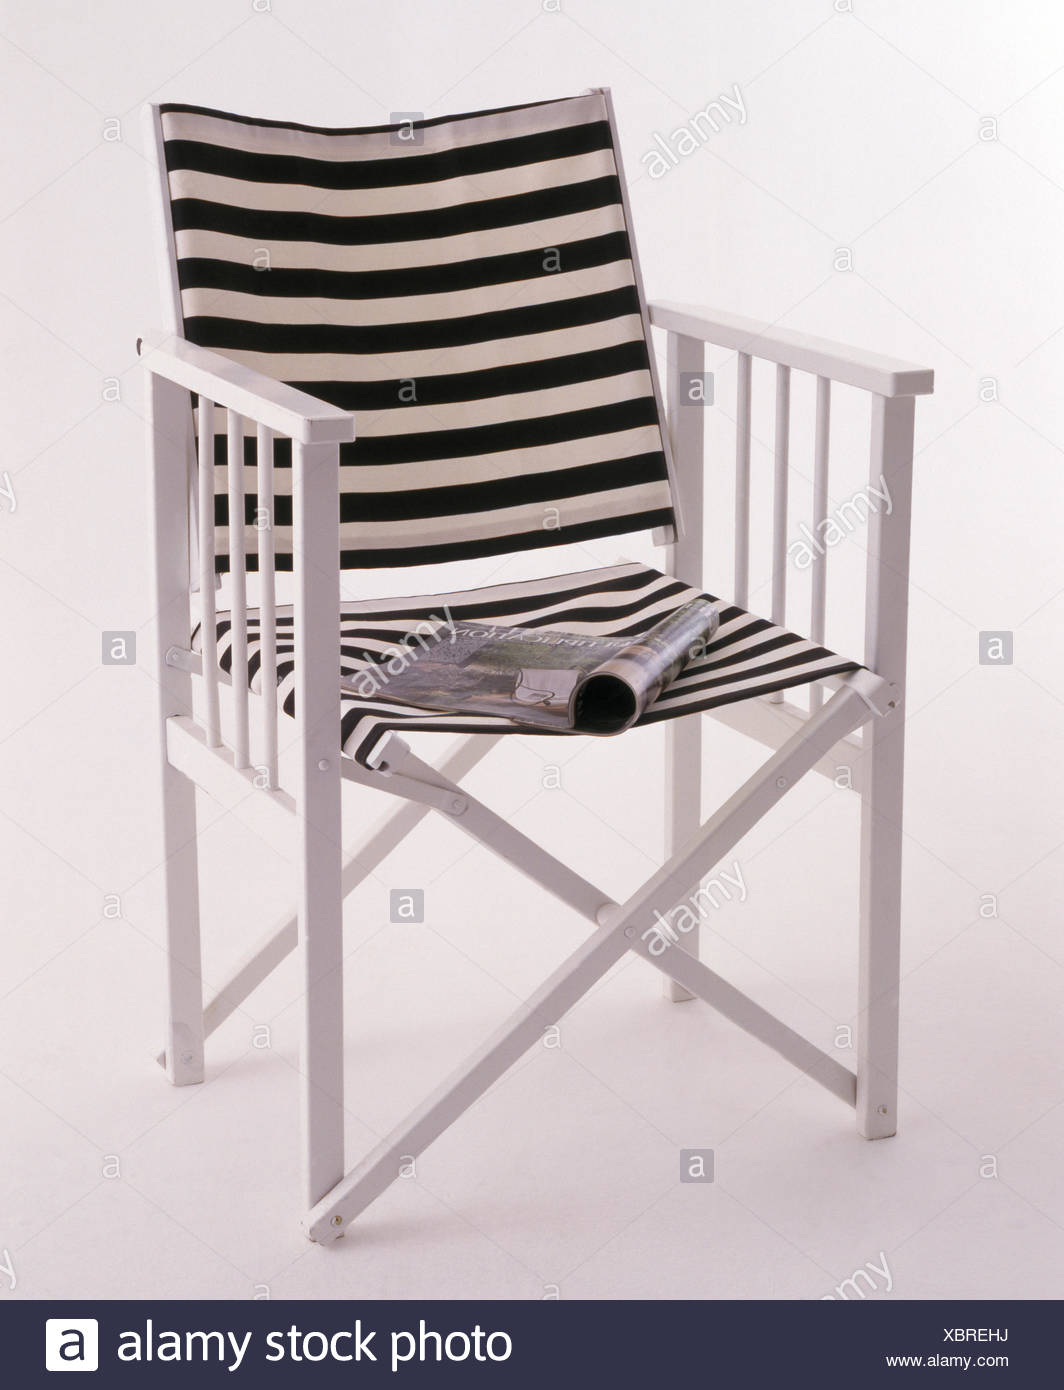 Director's chair with black+white striped canvas back and seat - Stock Image